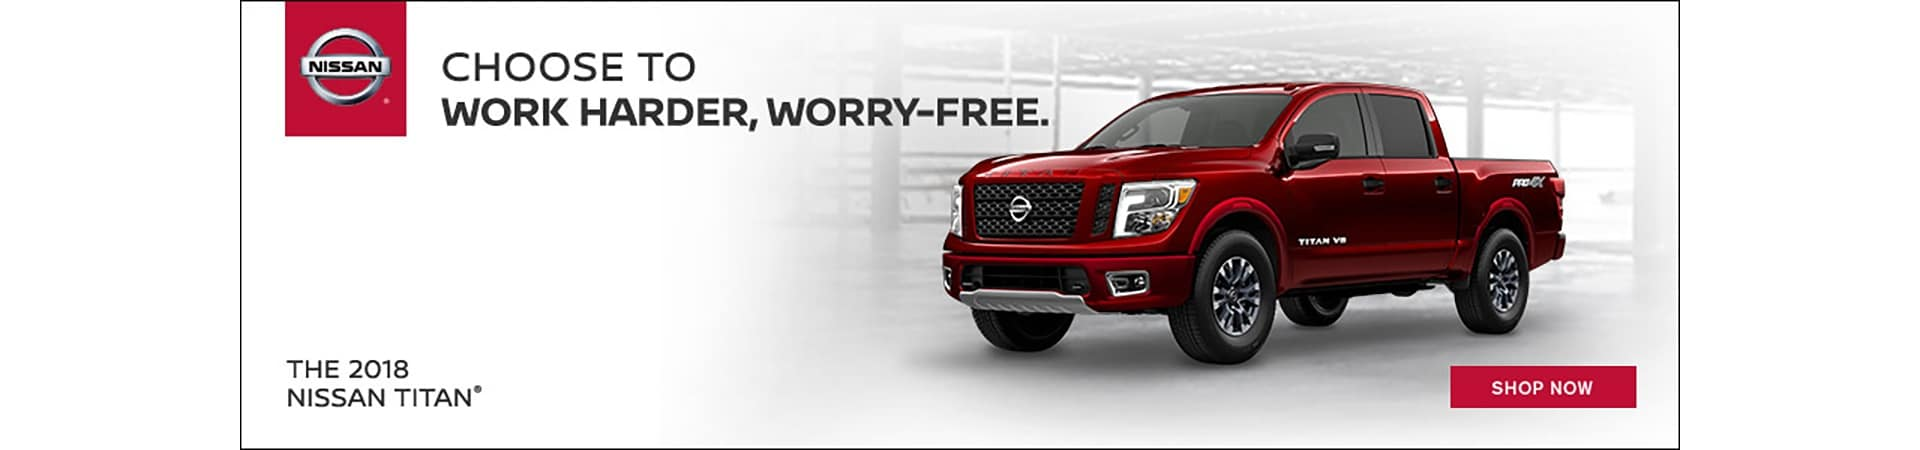 Lovely New 2018 Nissan Titan